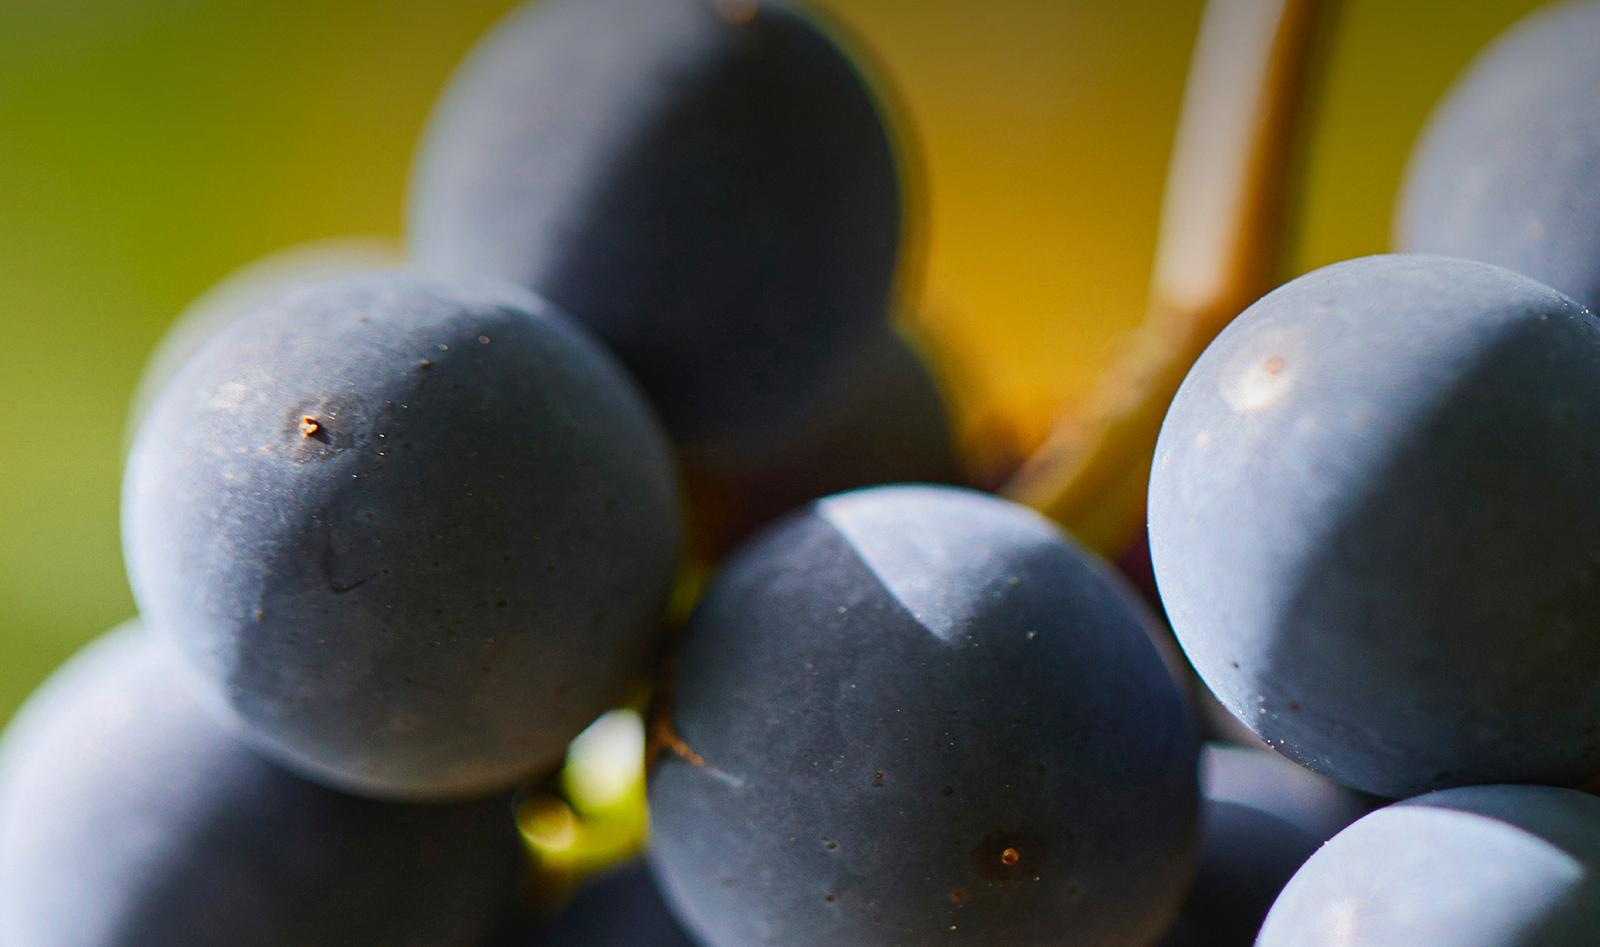 Closeup of grapes on the vine